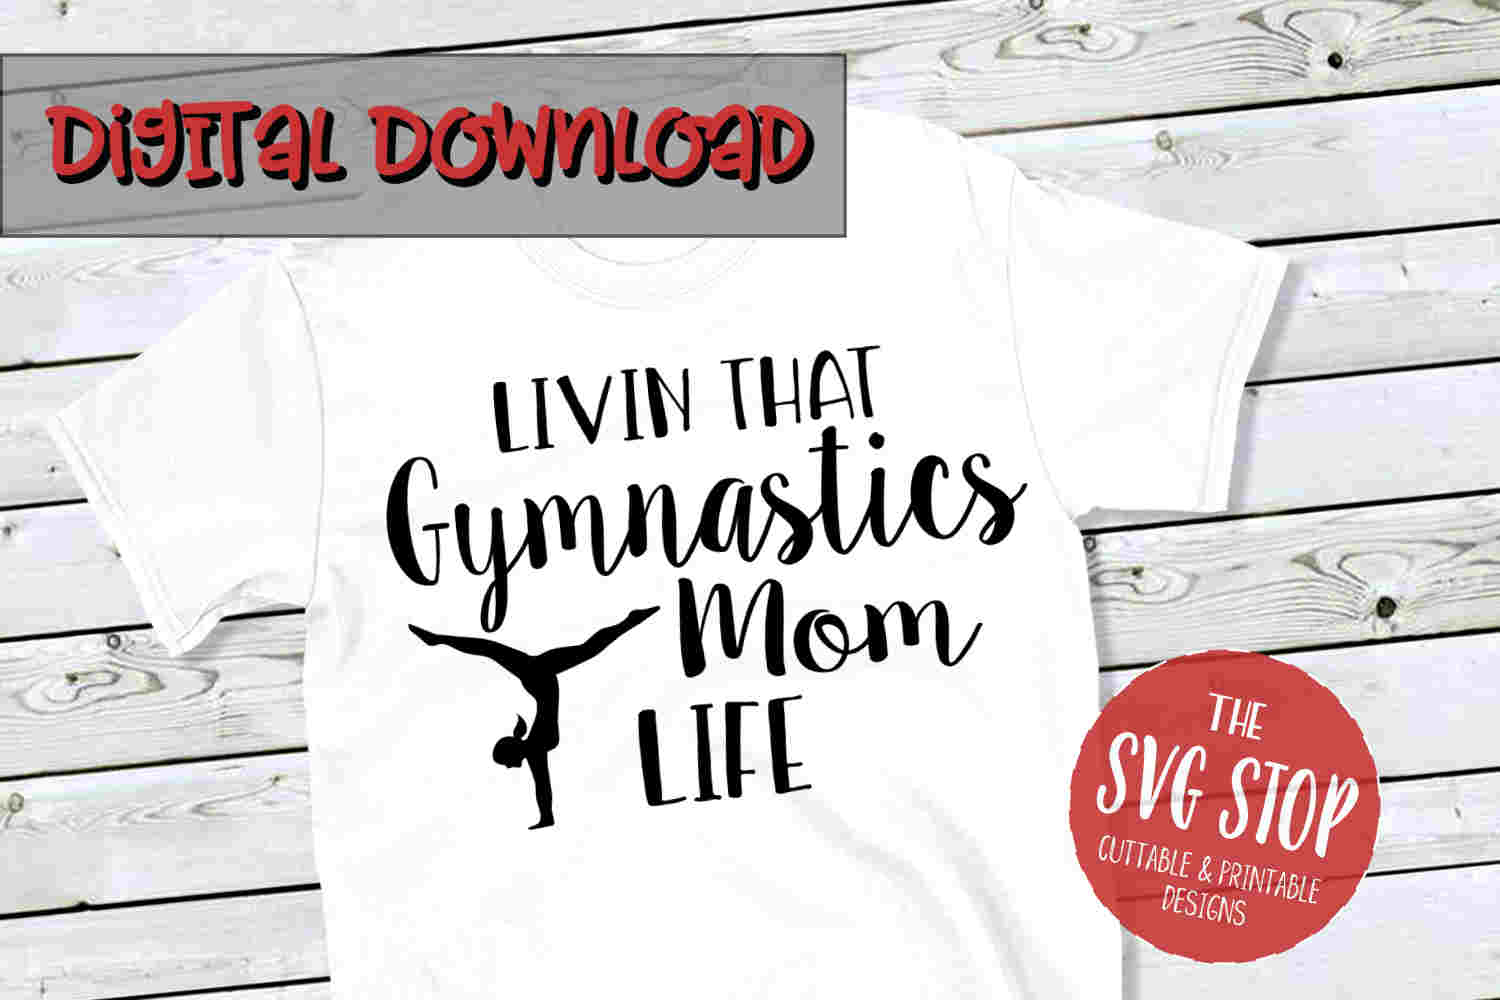 Gymnastics Mom Life -SVG, PNG, DXF example image 1